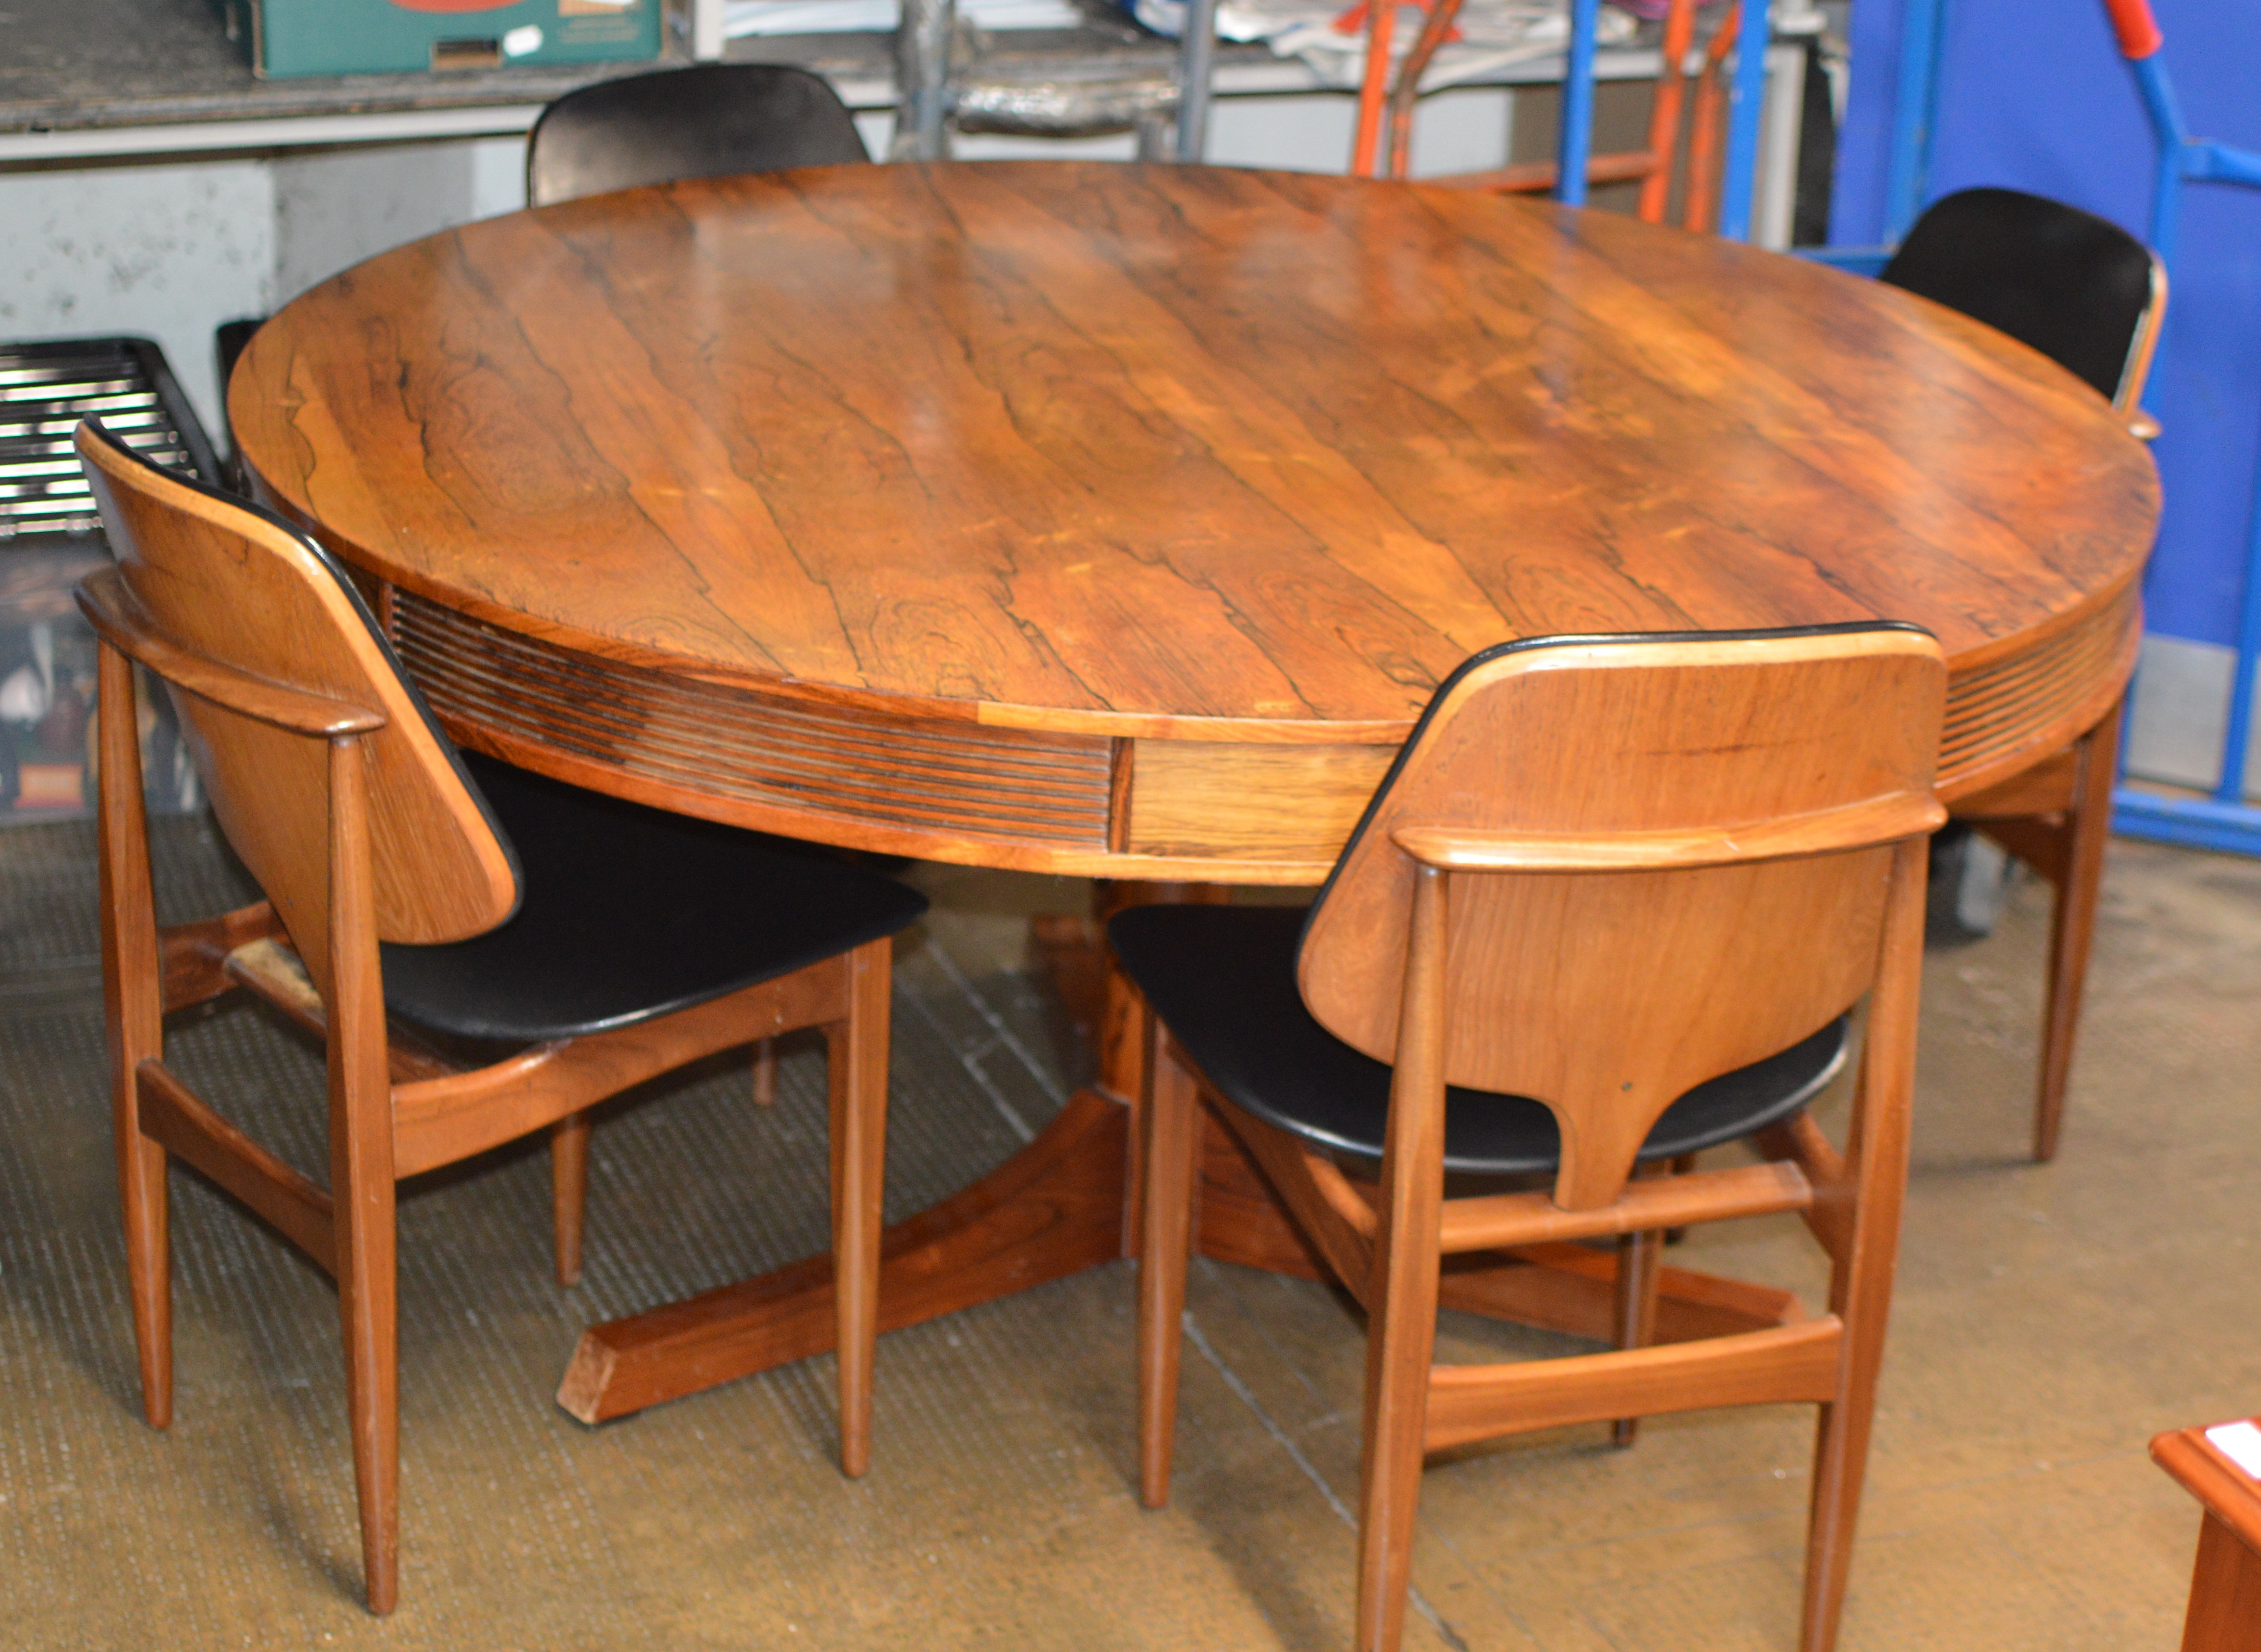 MID CENTURY ROSEWOOD DINING TABLE WITH 4 RETRO TEAK PADDED CHAIRS